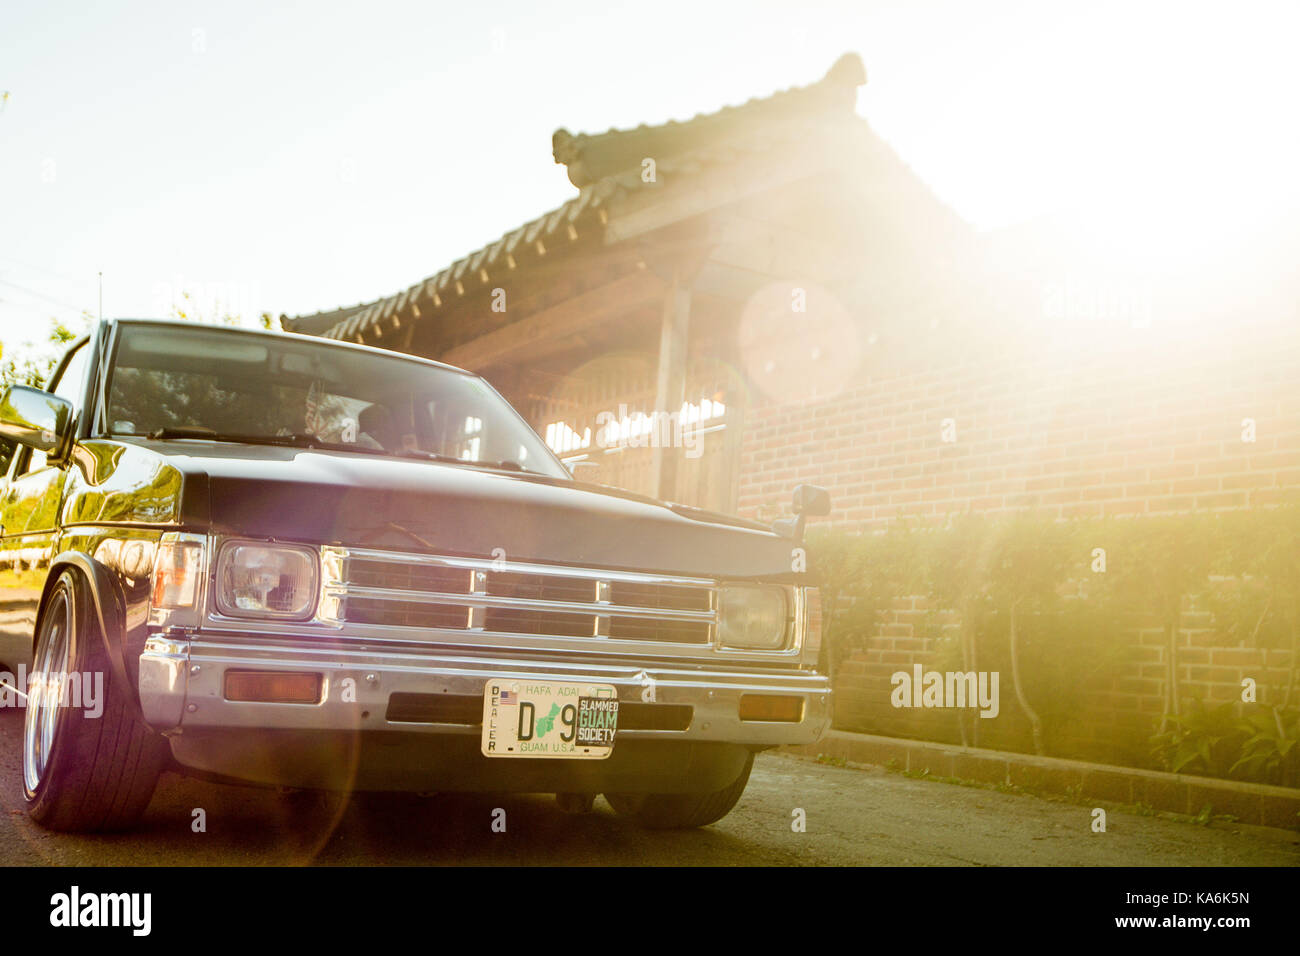 Datsun Truck Stock Photos Images